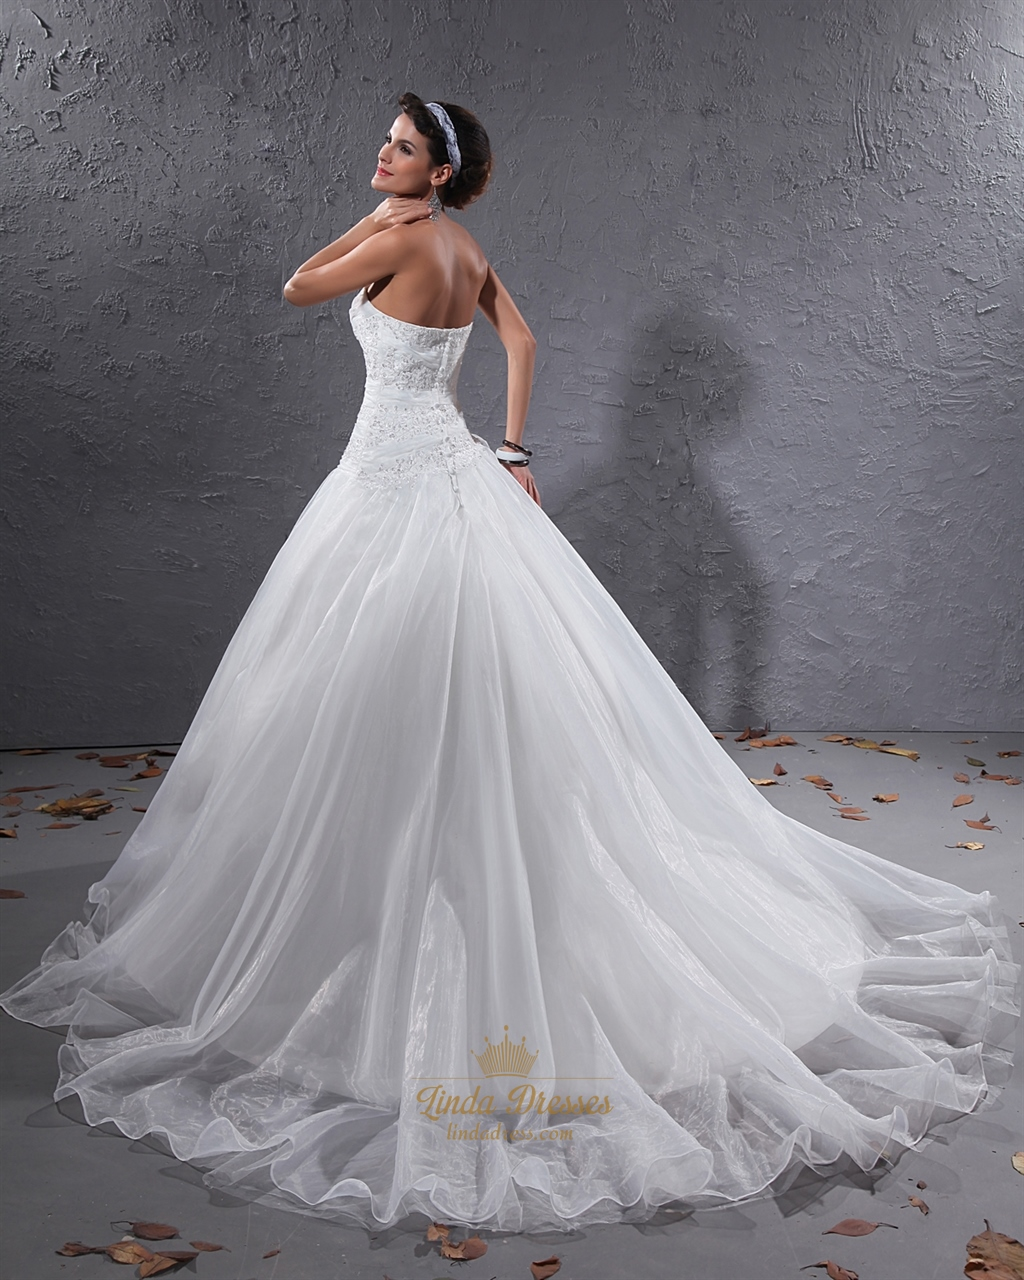 White strapless beaded lace applique organza wedding dress for White strapless wedding dresses